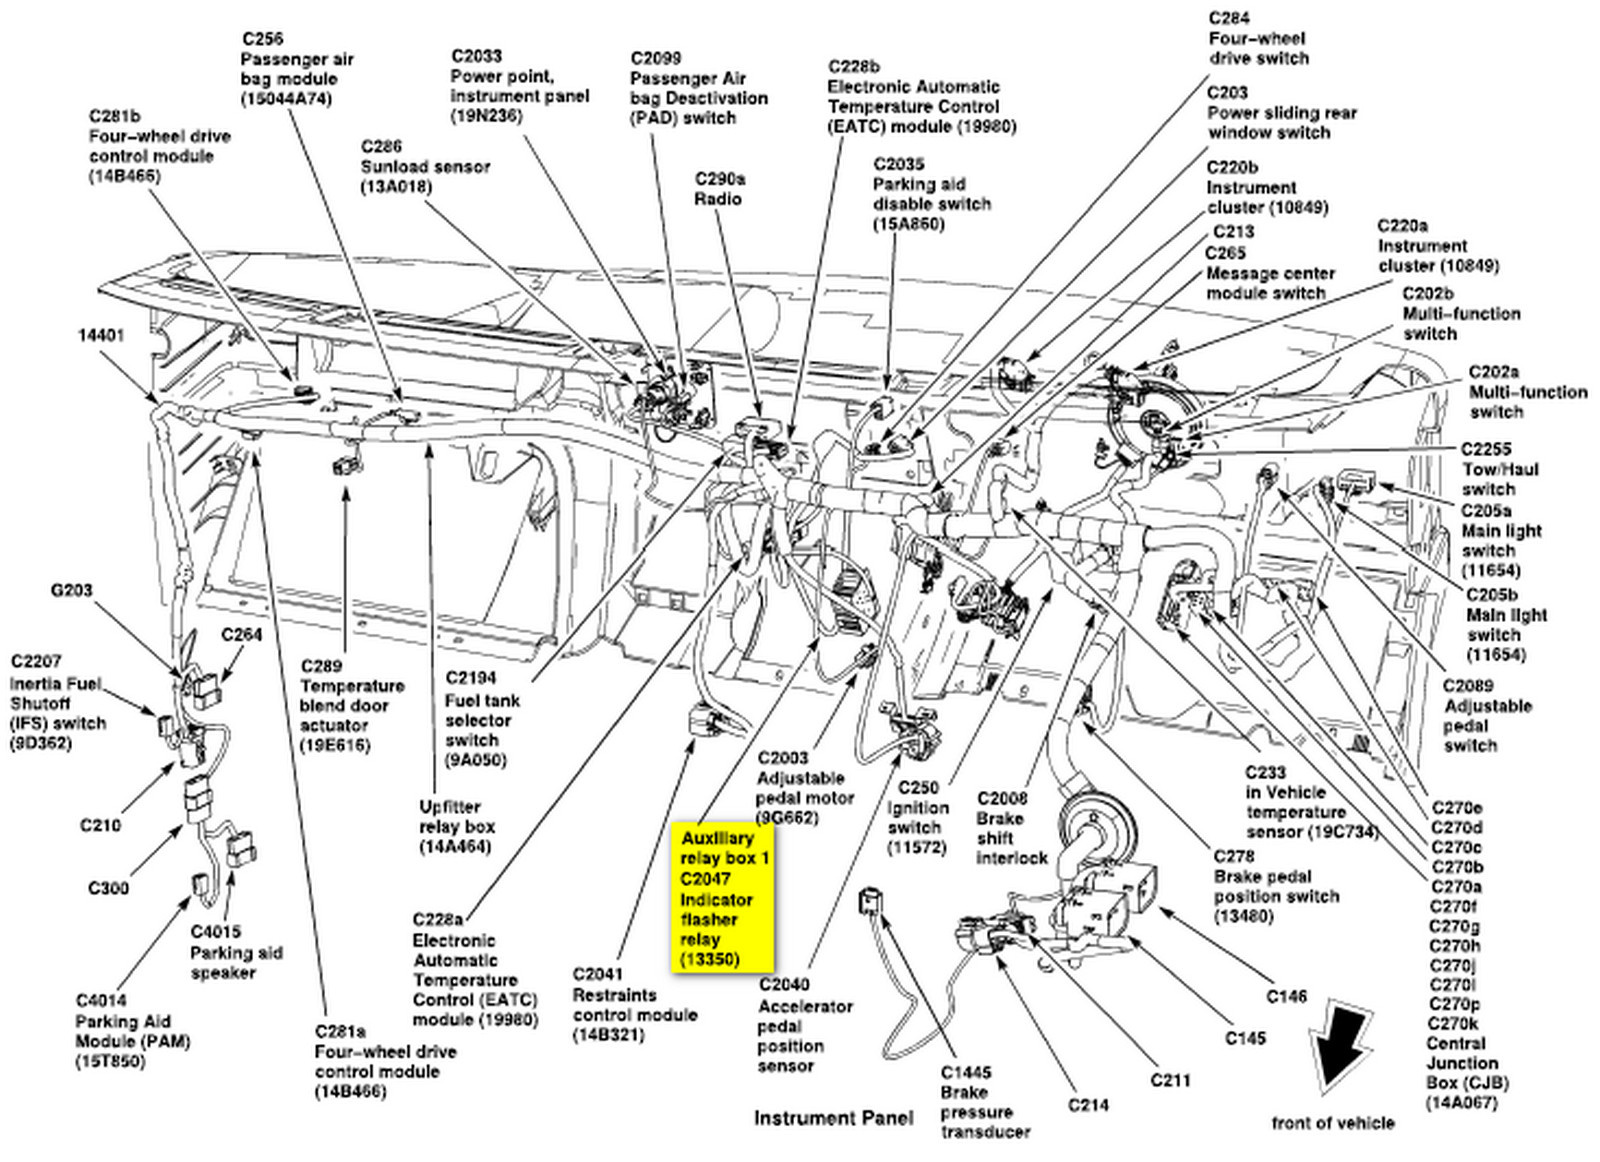 2012 Ford E350 Fuse Box Trusted Wiring Diagram 12 F 350 Panel E Download Diagrams U2022 Super Duty